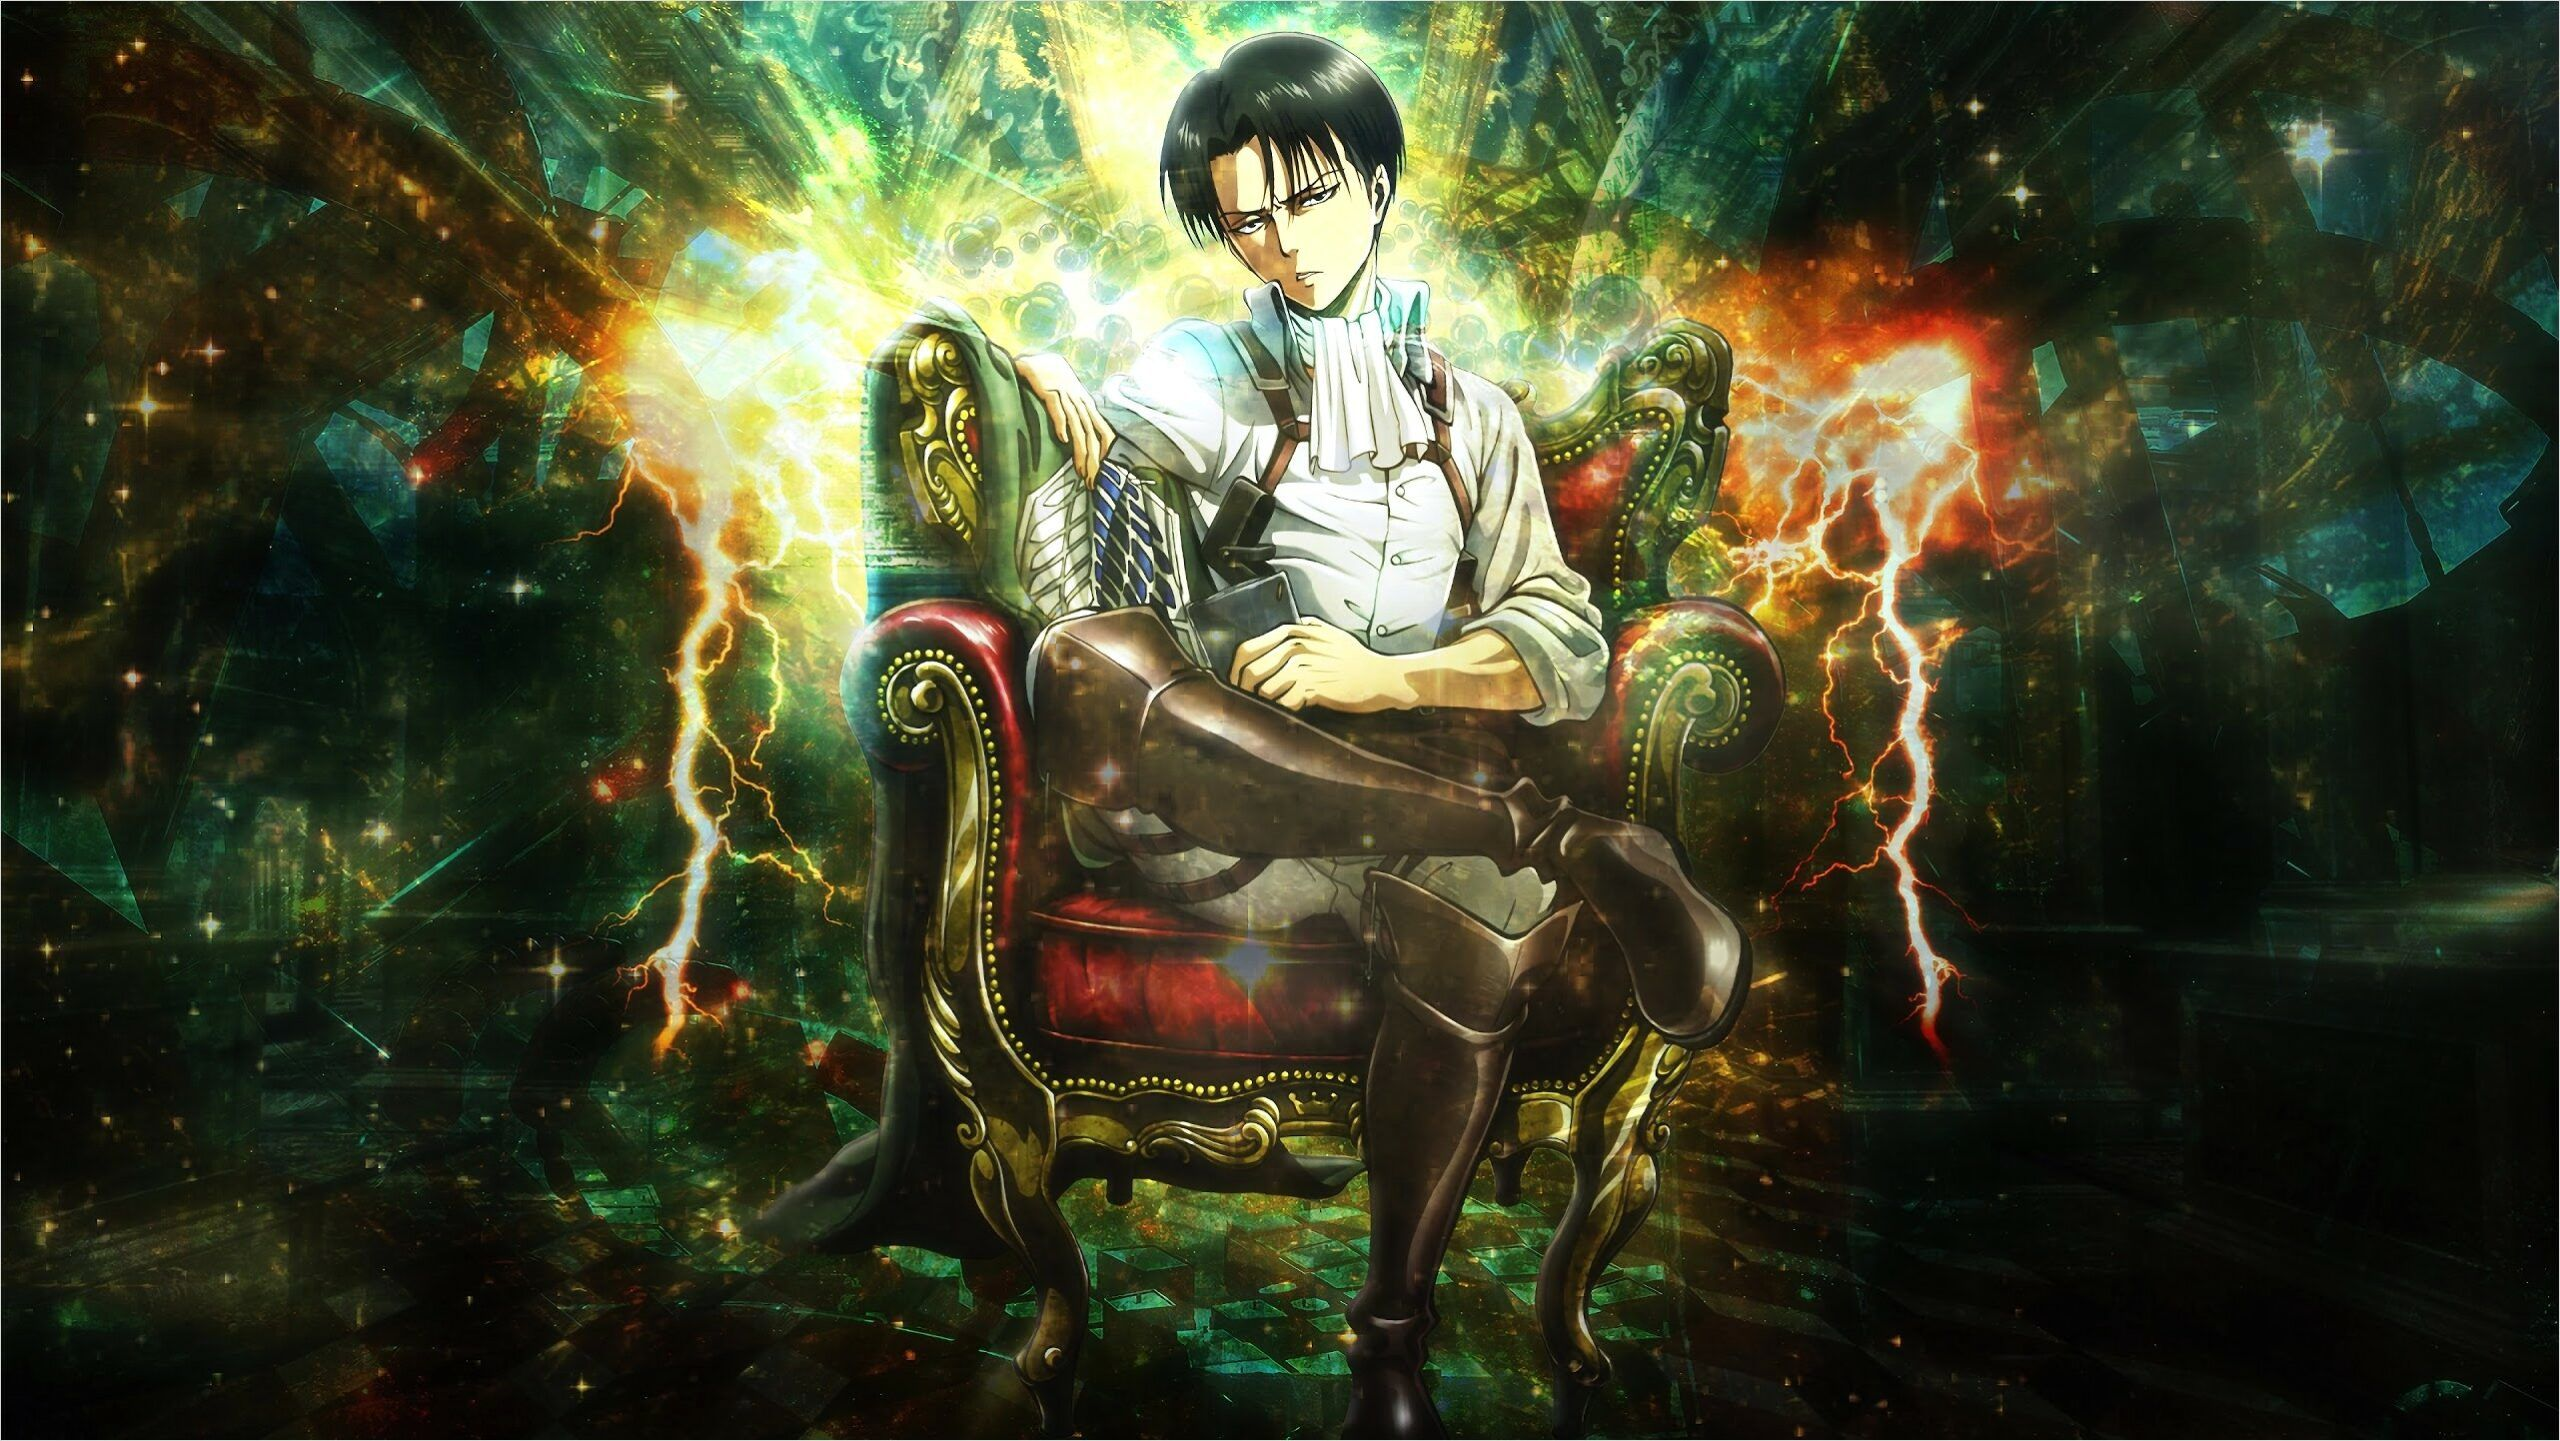 4k Attack On Titan Wallpaper Levi In 2020 Attack On Titan Art Attack On Titan Levi Attack On Titan